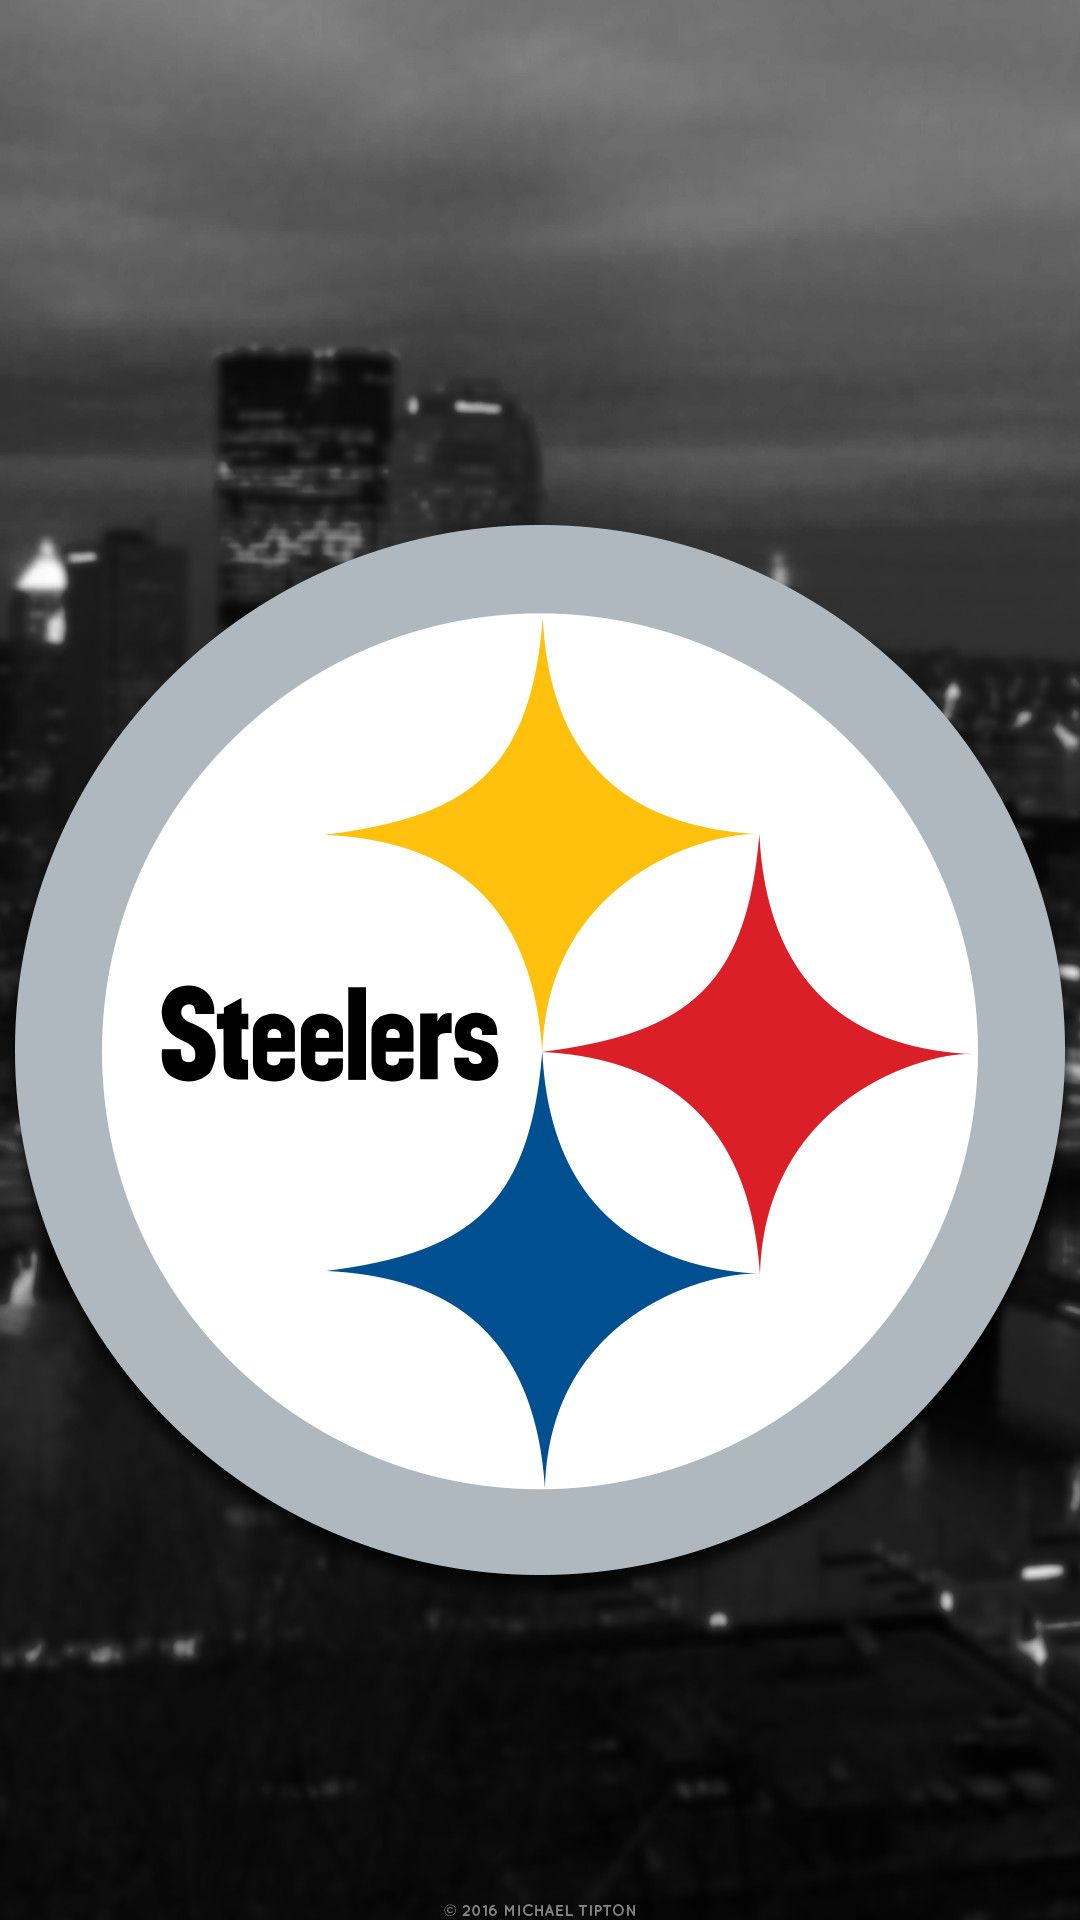 1080x1920 New Steelers Wallpapers for iPhone (64+ images)